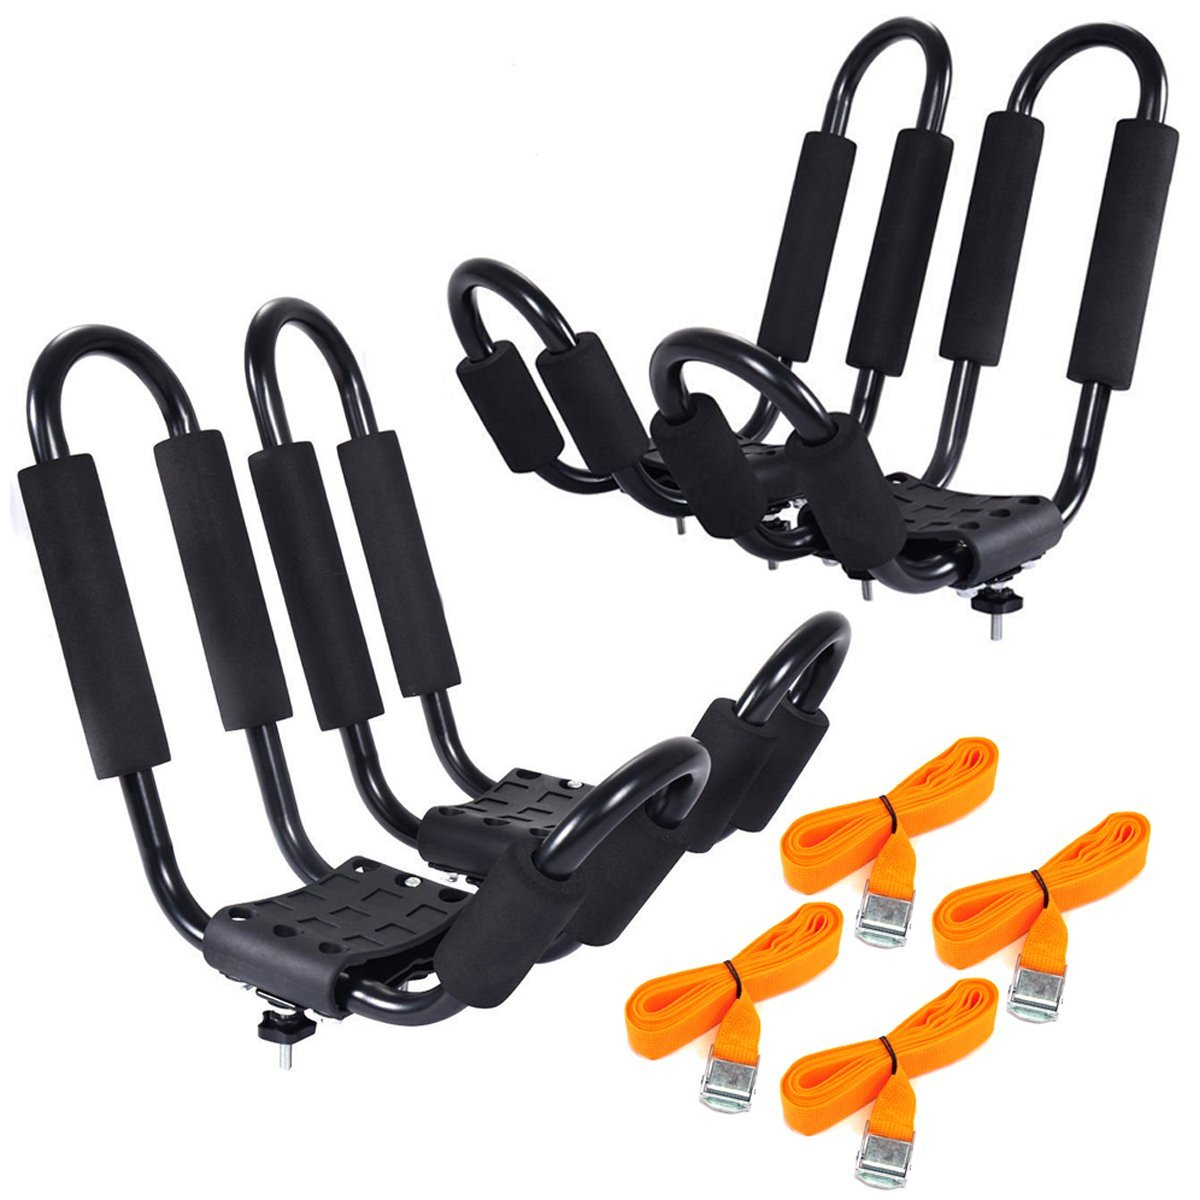 Reasonable J Rack Kayak Carrier Canoe Boat Roof Top Mount Car Suv Van W/free Cell Phone Bag Racks